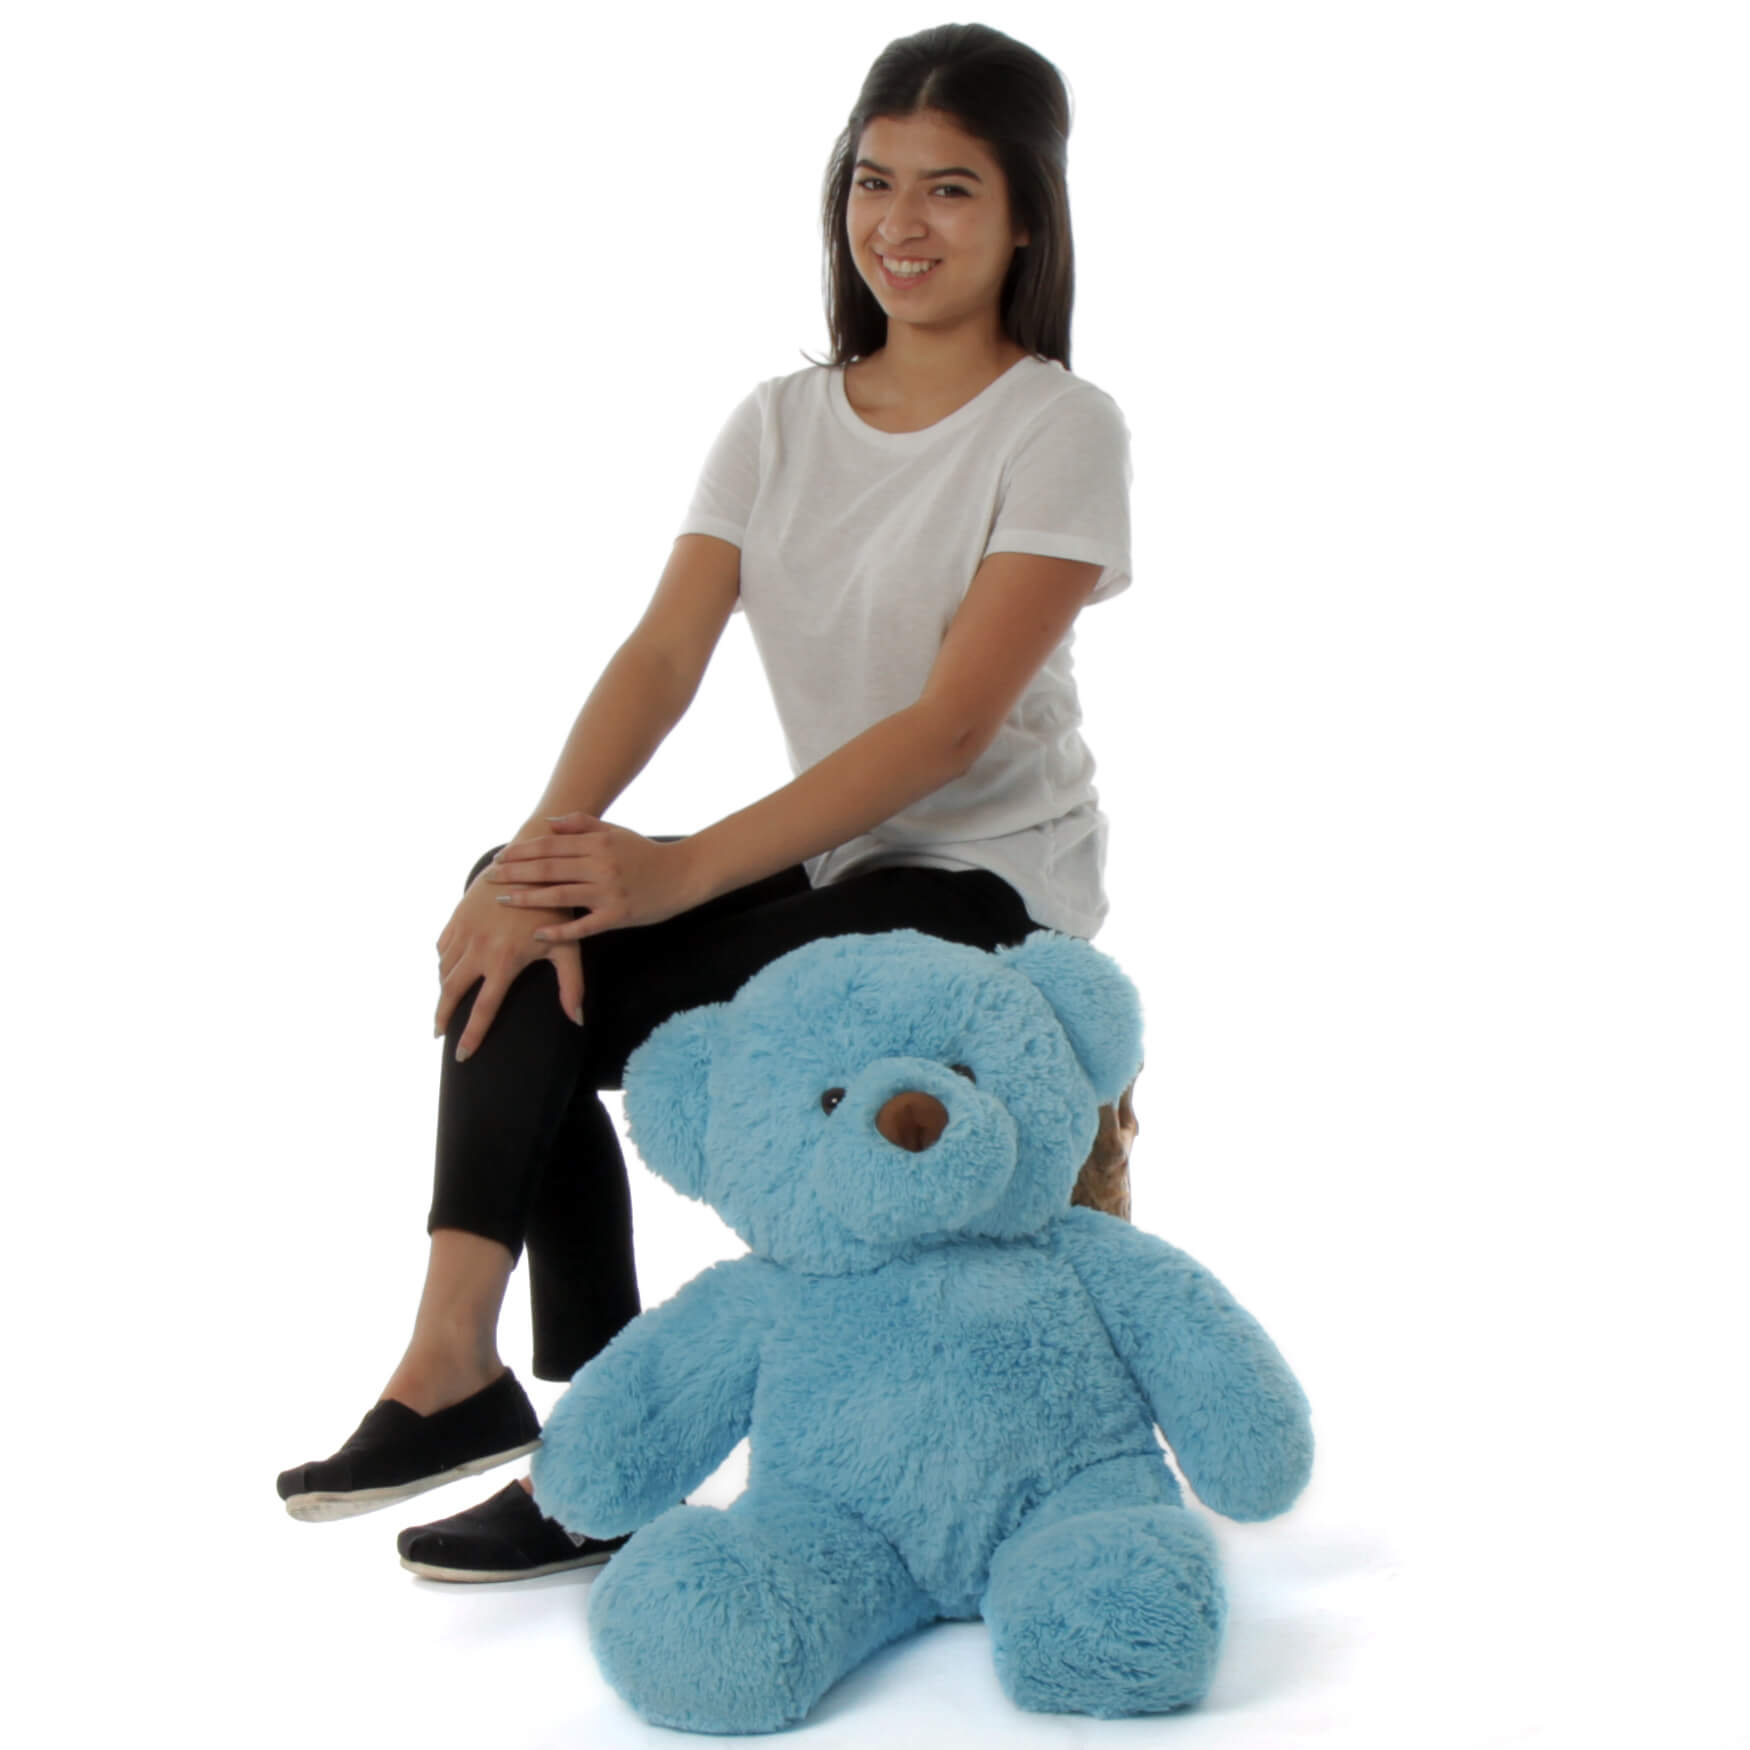 2.5ft-adorable-and-huggableblue-sammy-chubs-special-cute-bear-1.jpg